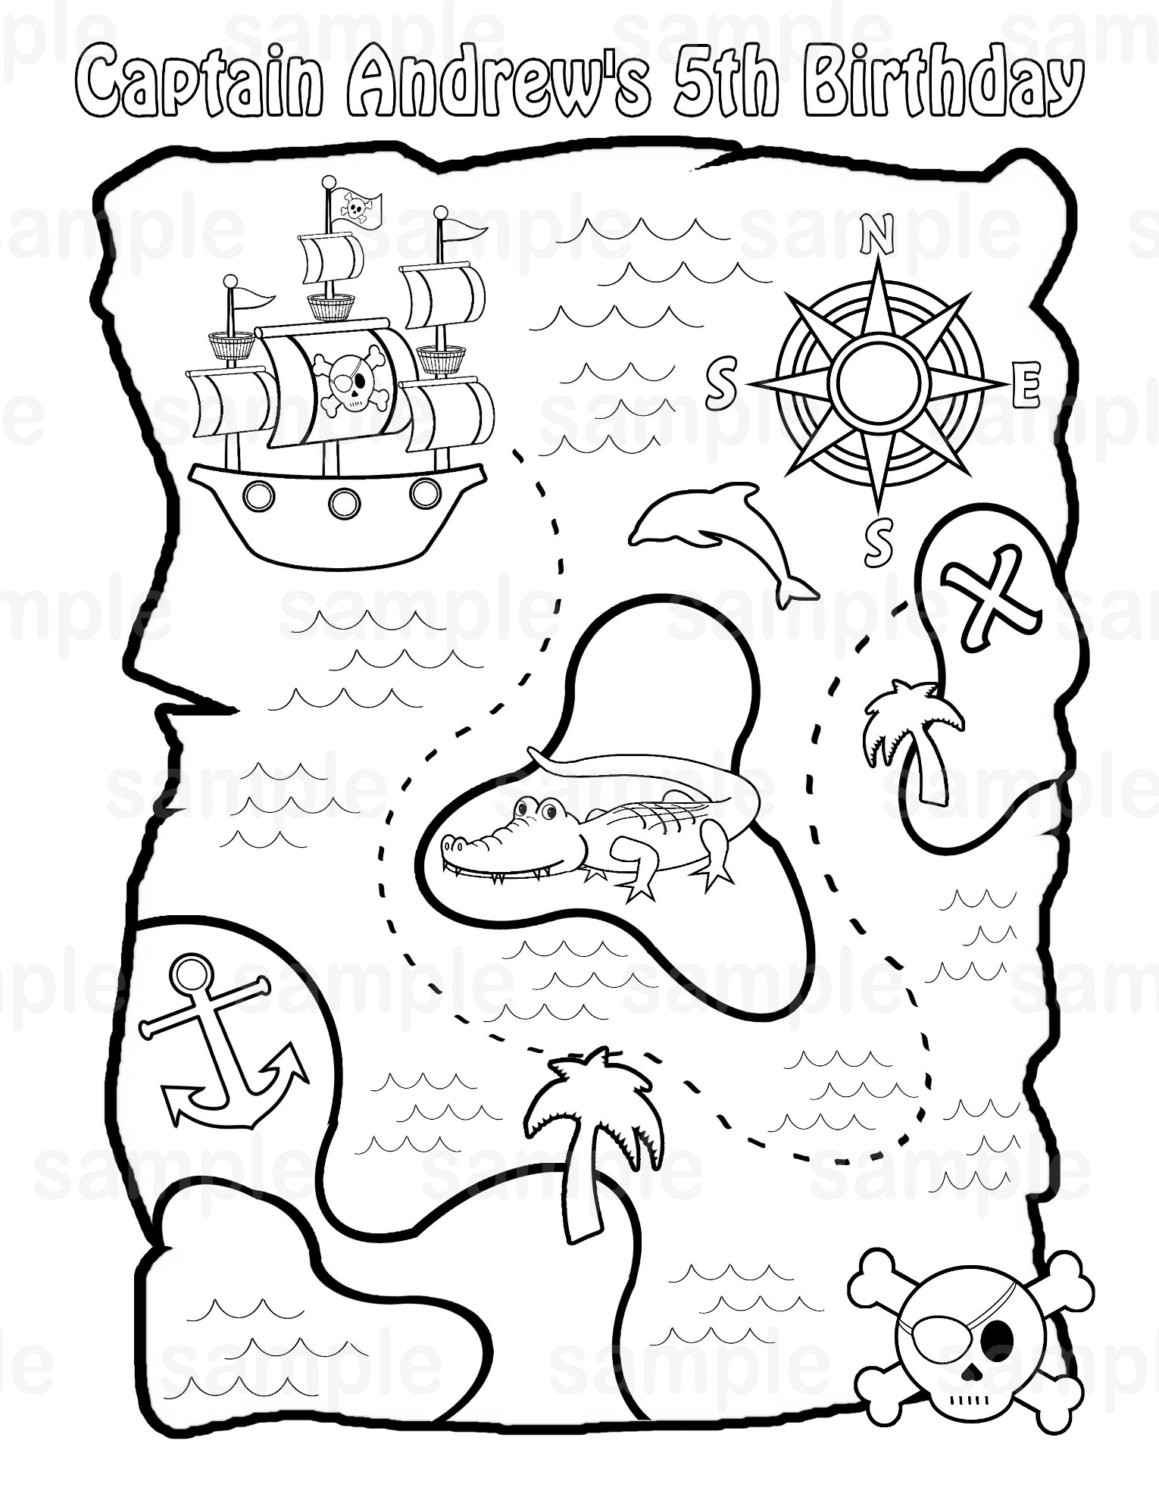 1159x1500 Printable Pirate Treasure Map For Kids Adult Coloring Pages Within